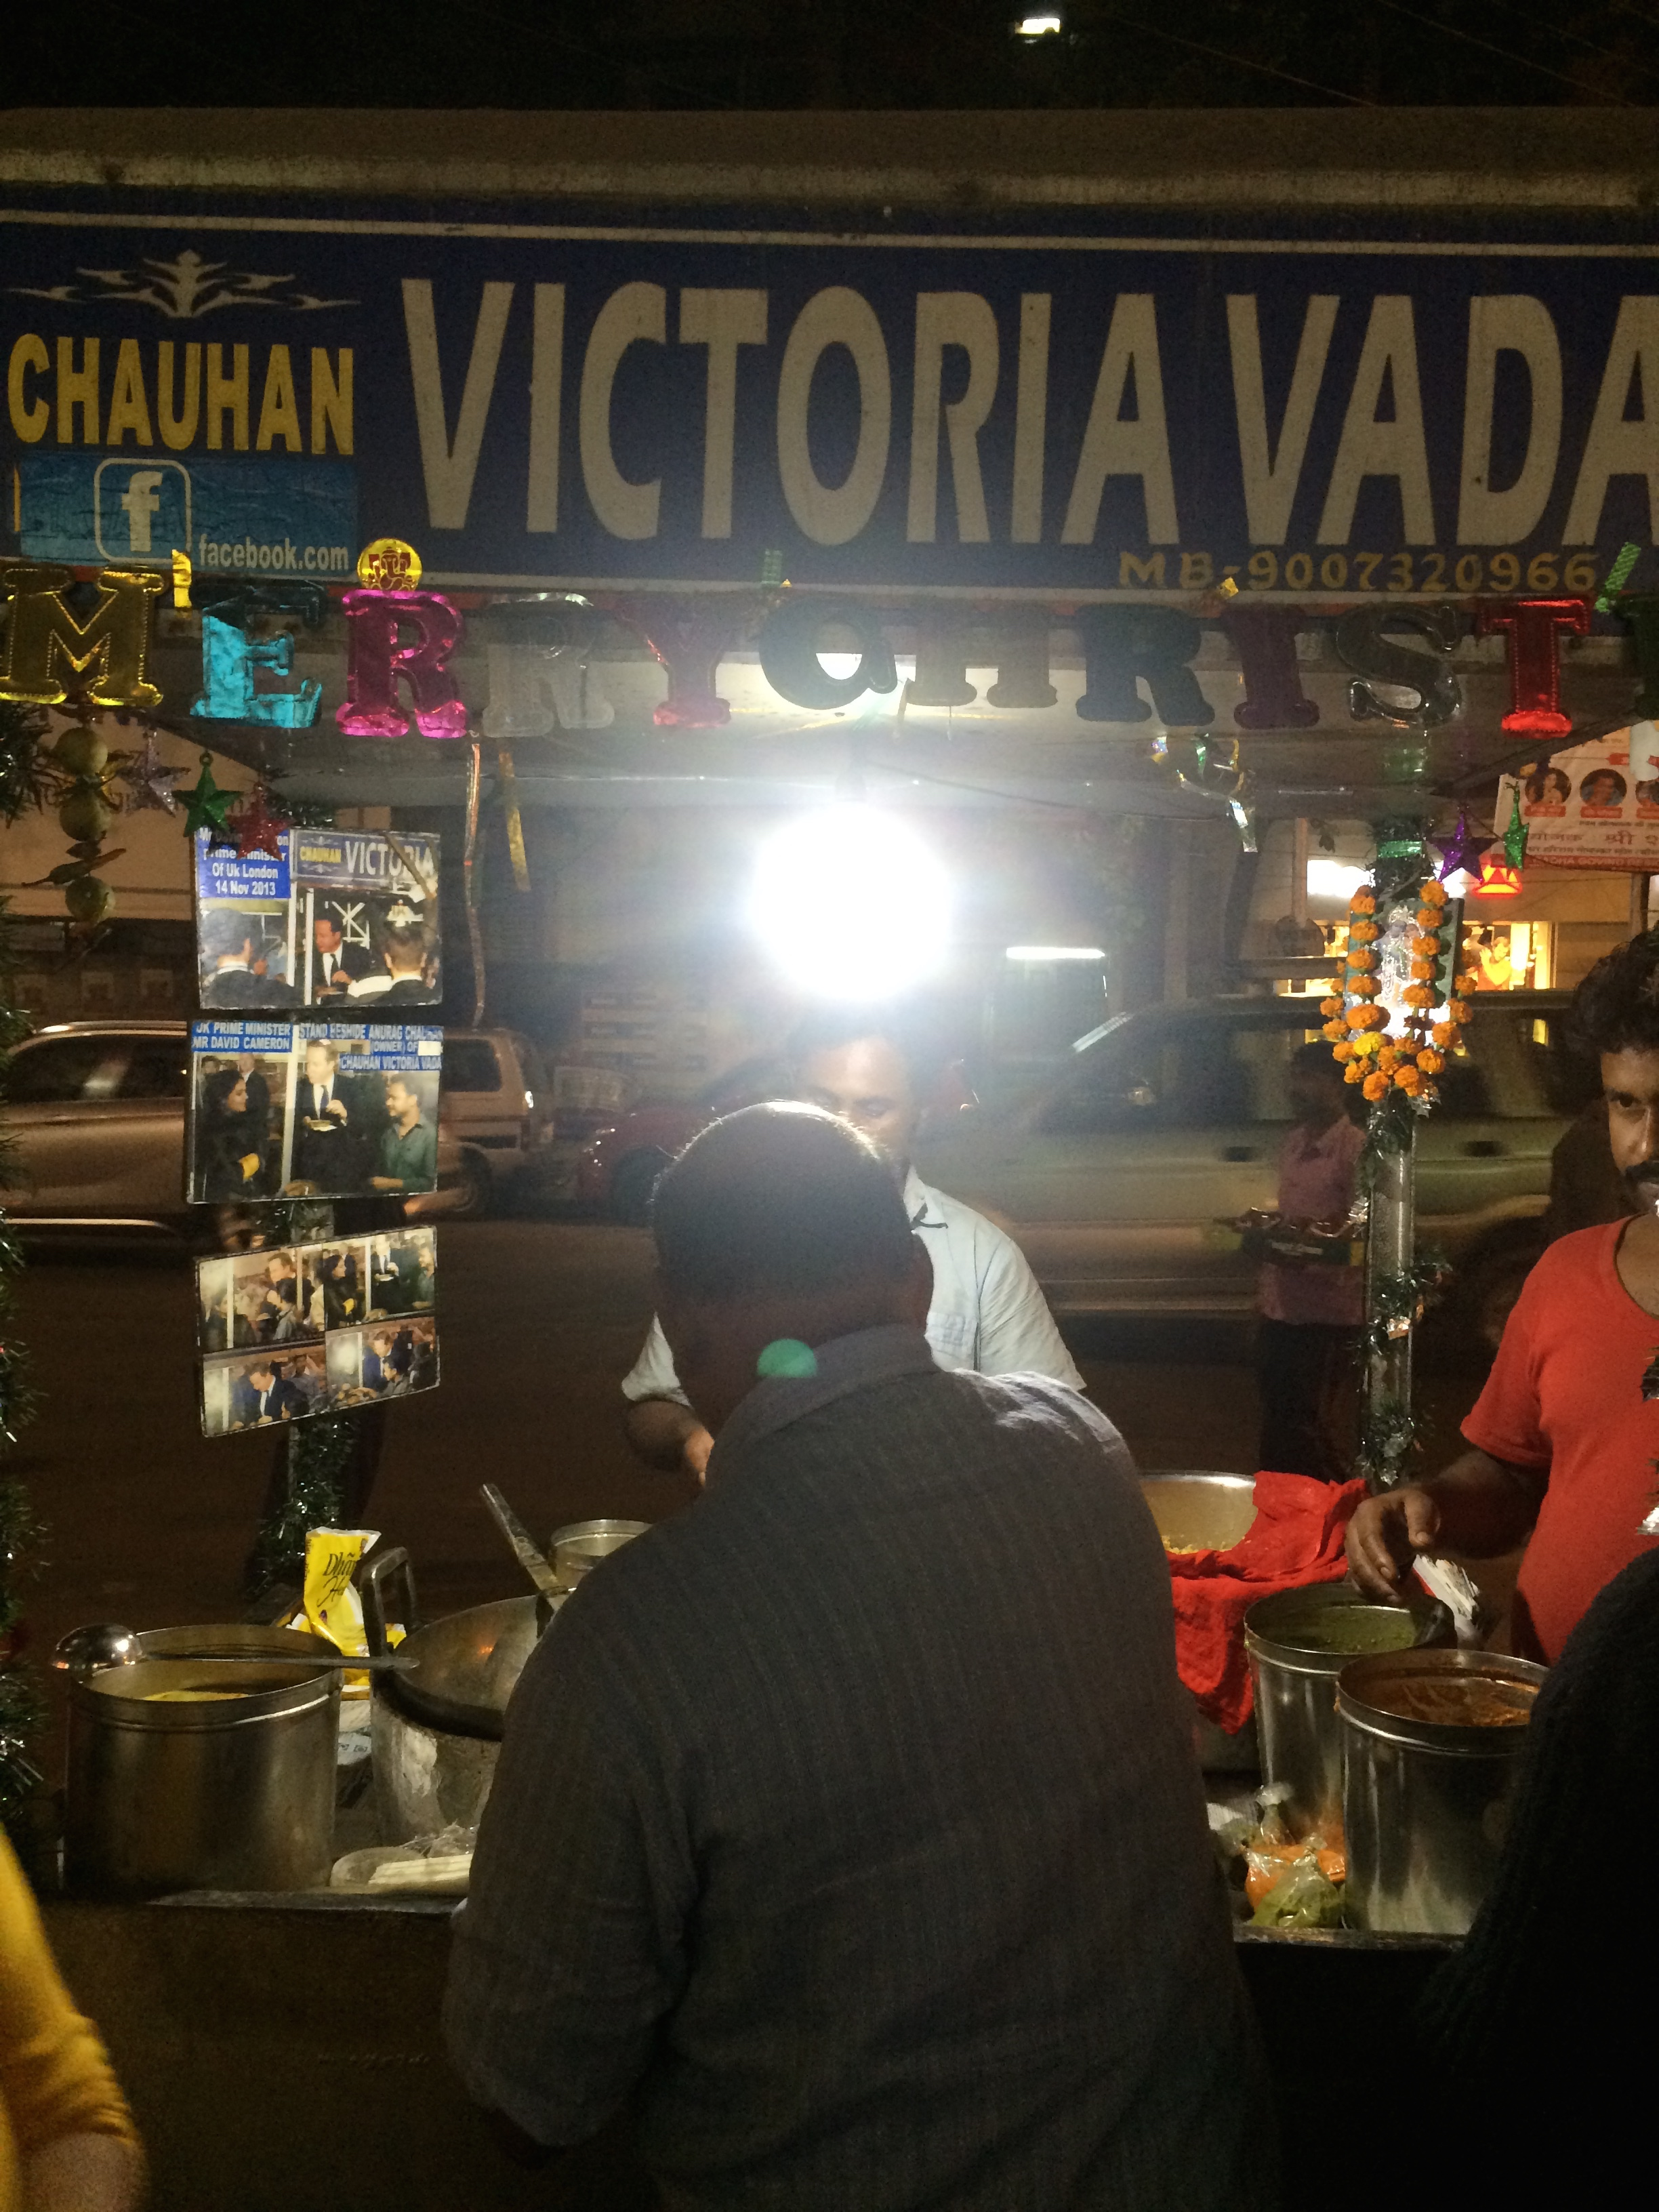 The Victoria Vada stall